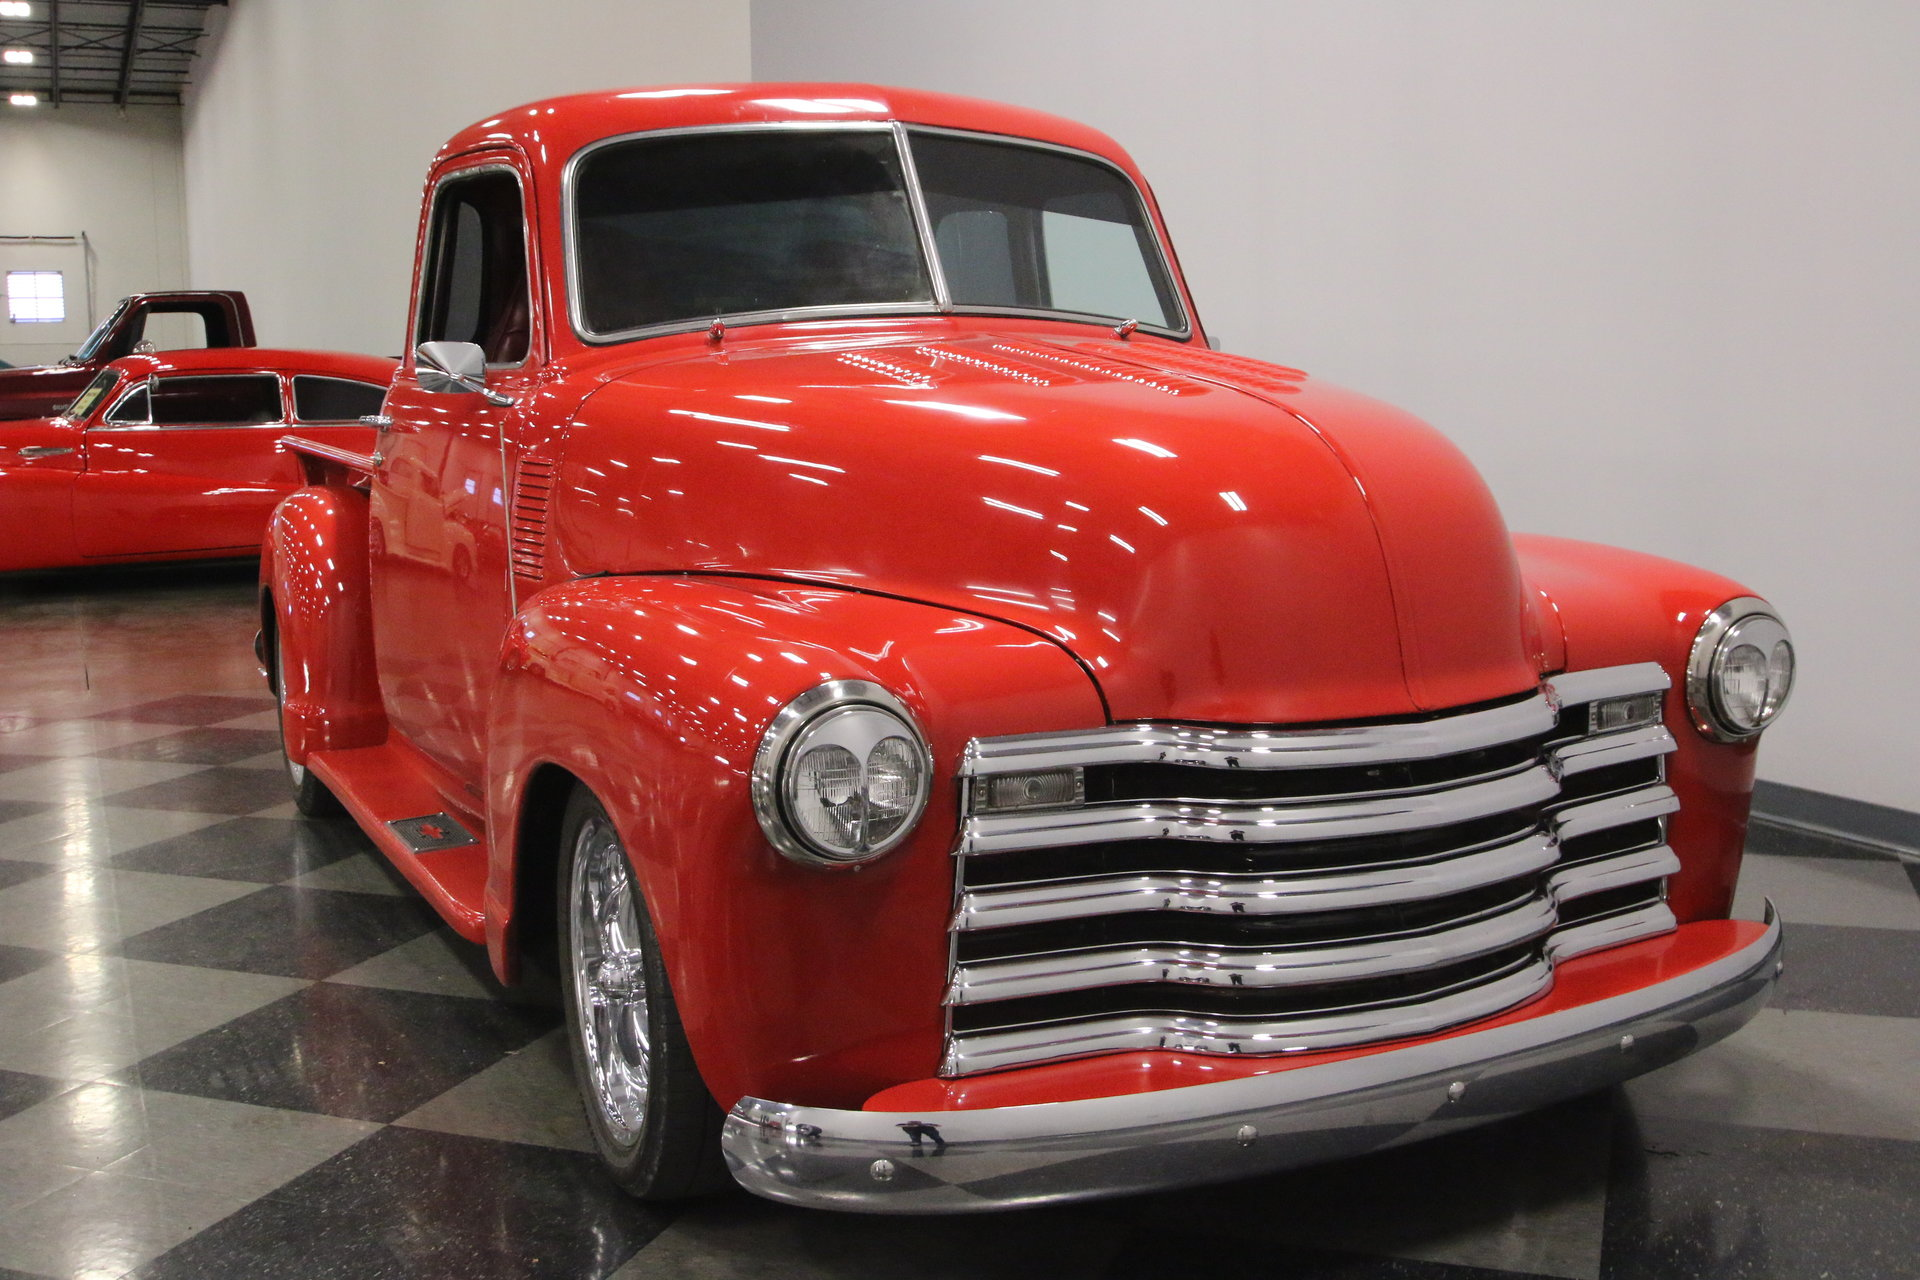 1949 Chevrolet 3100 Streetside Classics The Nations Trusted Chevy Truck Dash Show More Photos